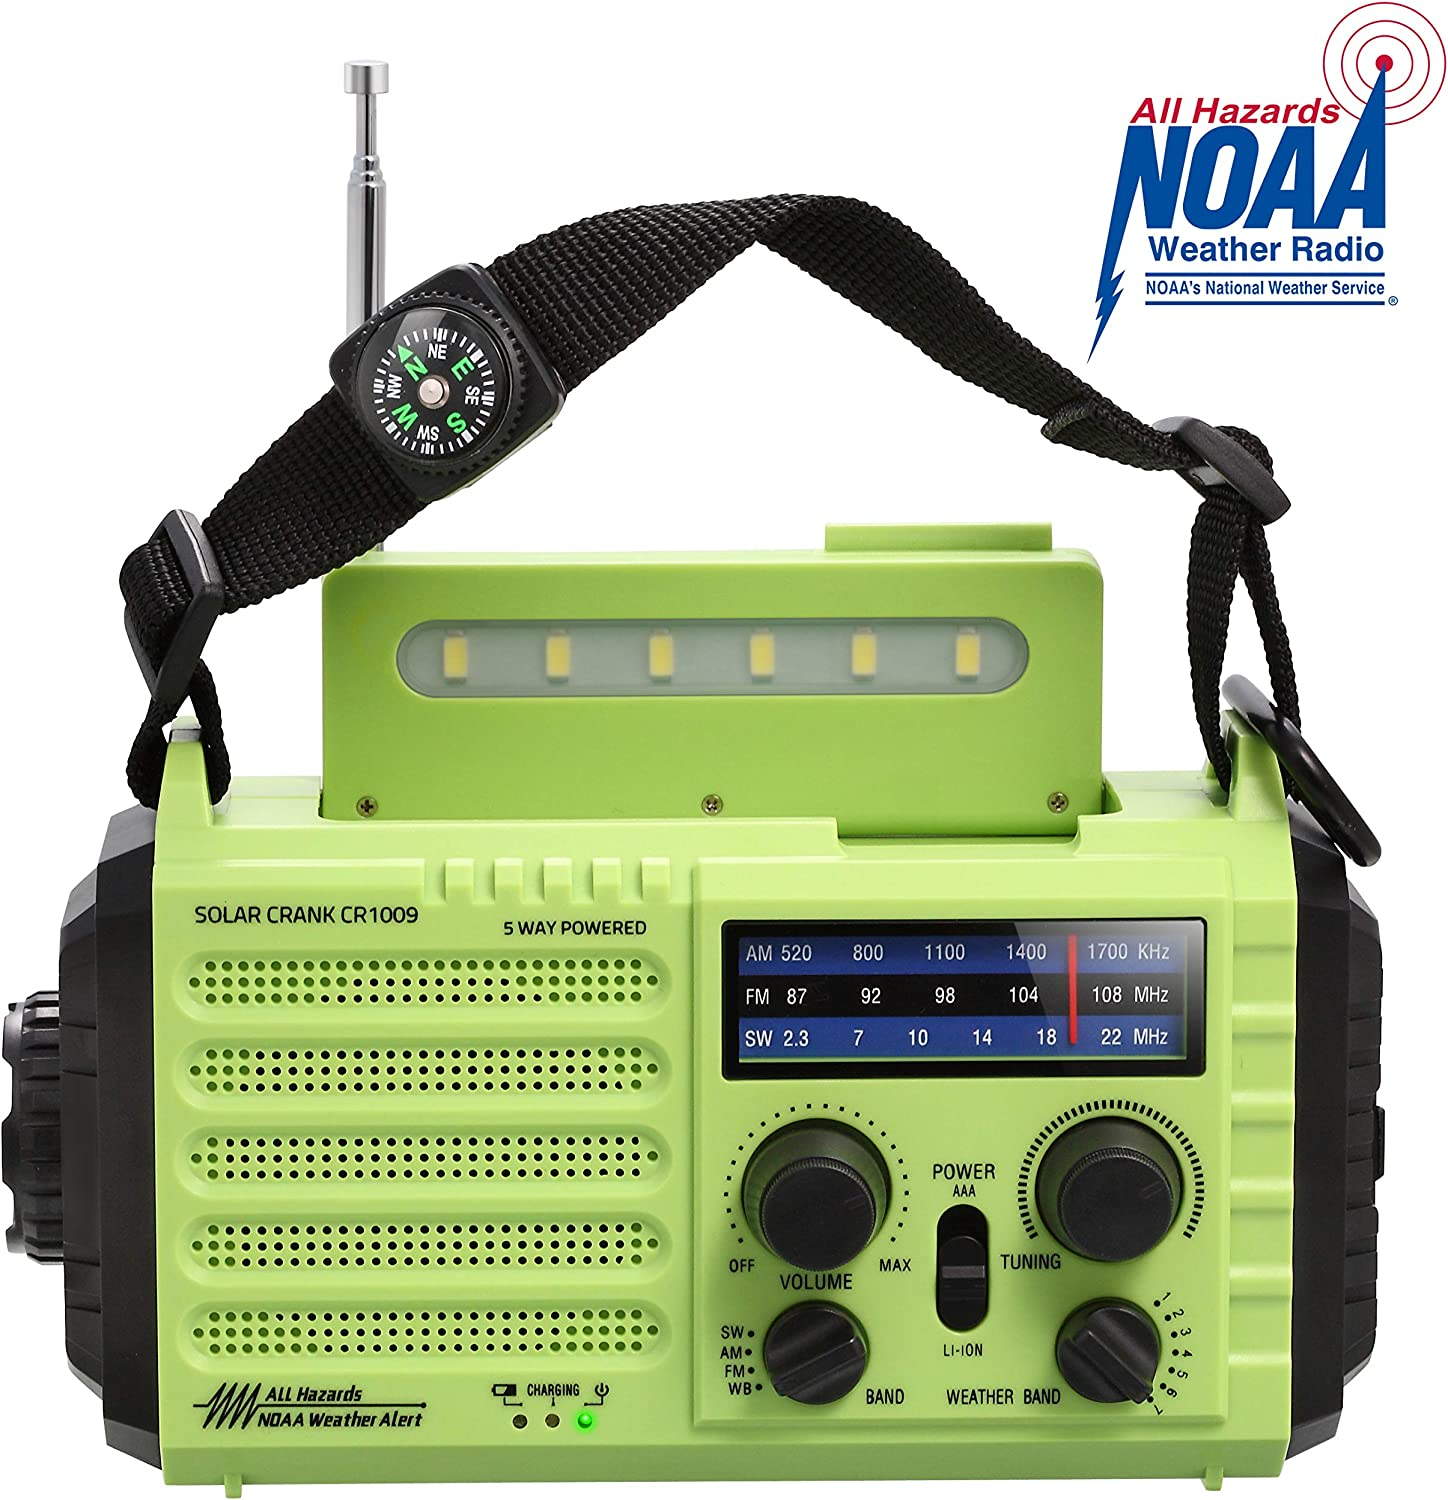 NOAA Emergency Weather Alert Radio & AM/FM/SW Broadcast Kit for Travelling, Dynamo Hand Crank/Solar Panel/Built-in Battery/AC Powered with Compass, SOS Alarm, LED Flashlight, Reading Lamp, USB Charger